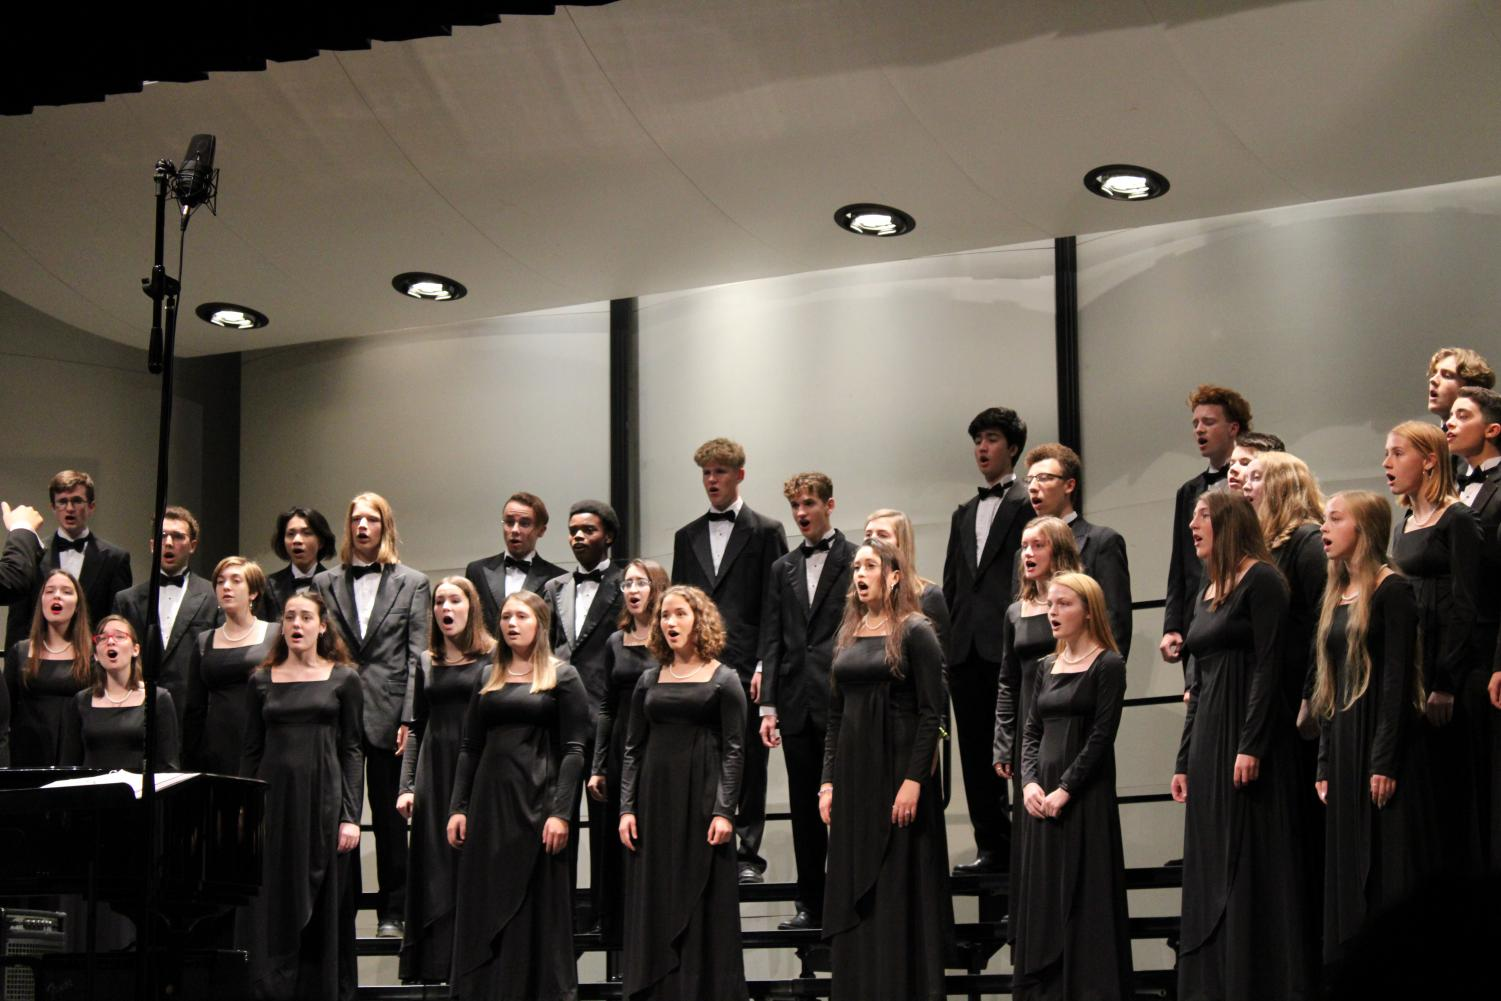 City High concert choir encapsulating the audience with a high fermata note